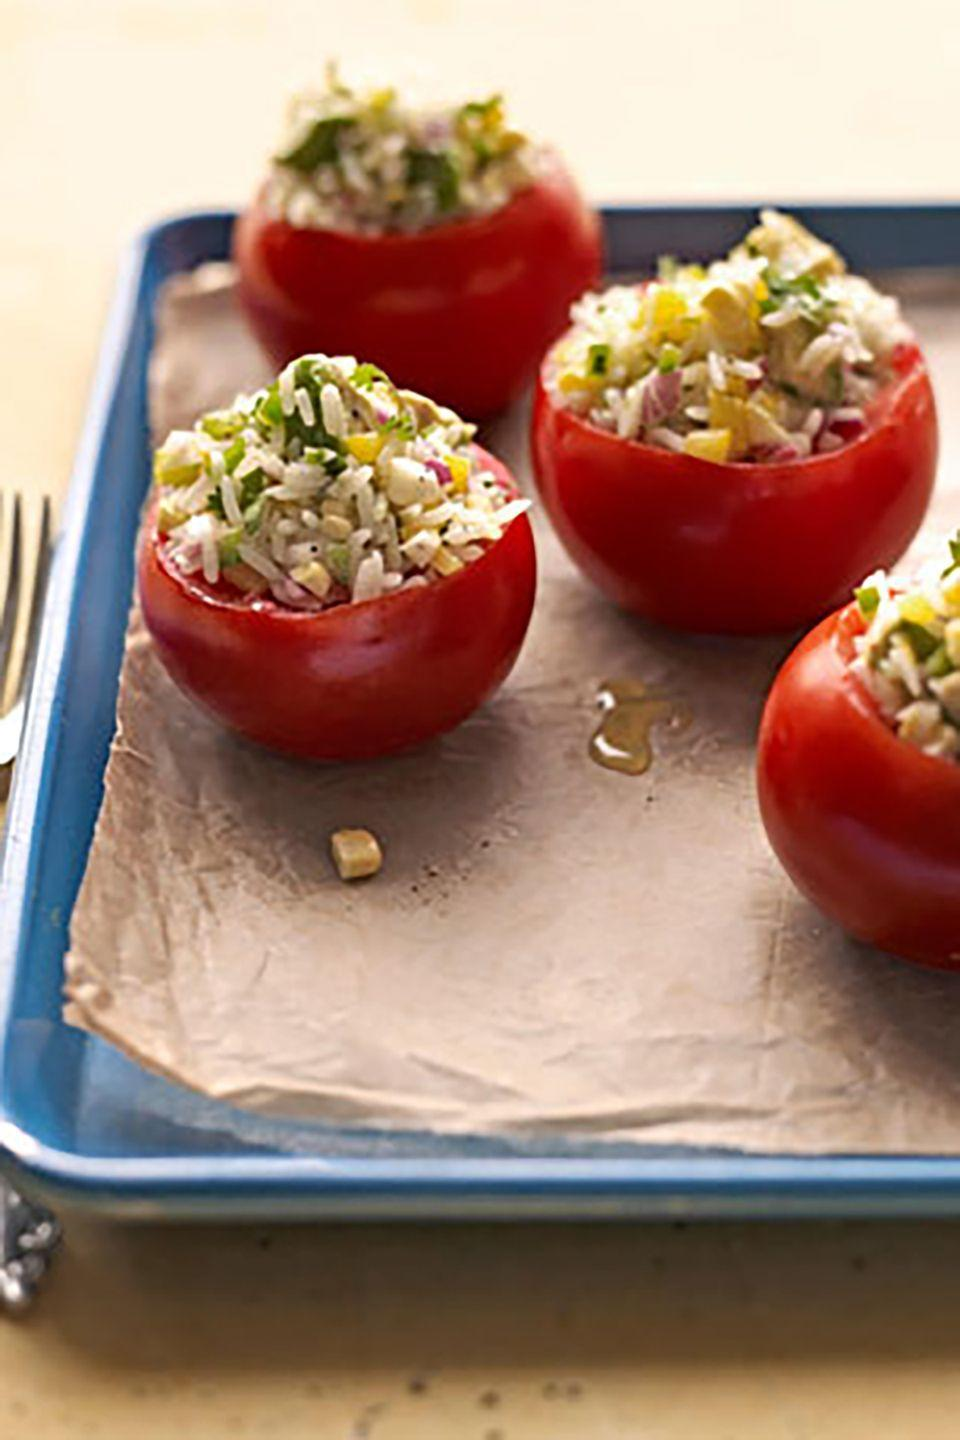 "<p>Take advantage of the fresh tastes by stuffing vine tomatoes with corn, avocado, and cilantro.</p><p><strong><a href=""https://www.countryliving.com/food-drinks/recipes/a2907/corn-stuffed-tomatoes-recipe/"" rel=""nofollow noopener"" target=""_blank"" data-ylk=""slk:Get the recipe"" class=""link rapid-noclick-resp"">Get the recipe</a>.</strong></p>"